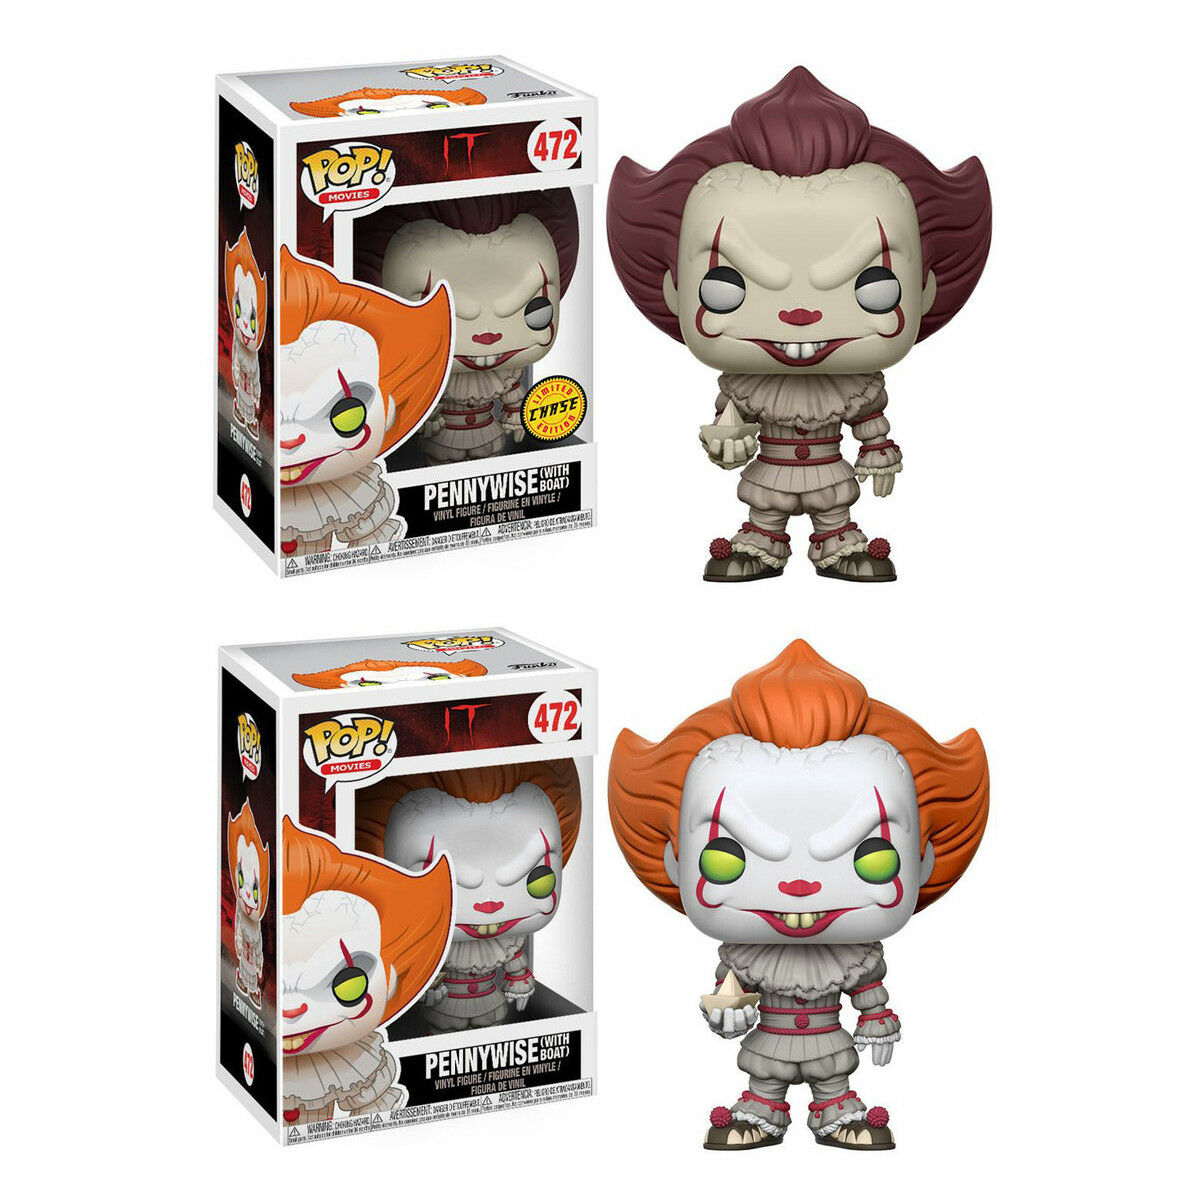 POP  IT Pennywise With Boat gituttio EYES   472 Chase RARE diverdeimentoko Official nuovo  centro commerciale di moda